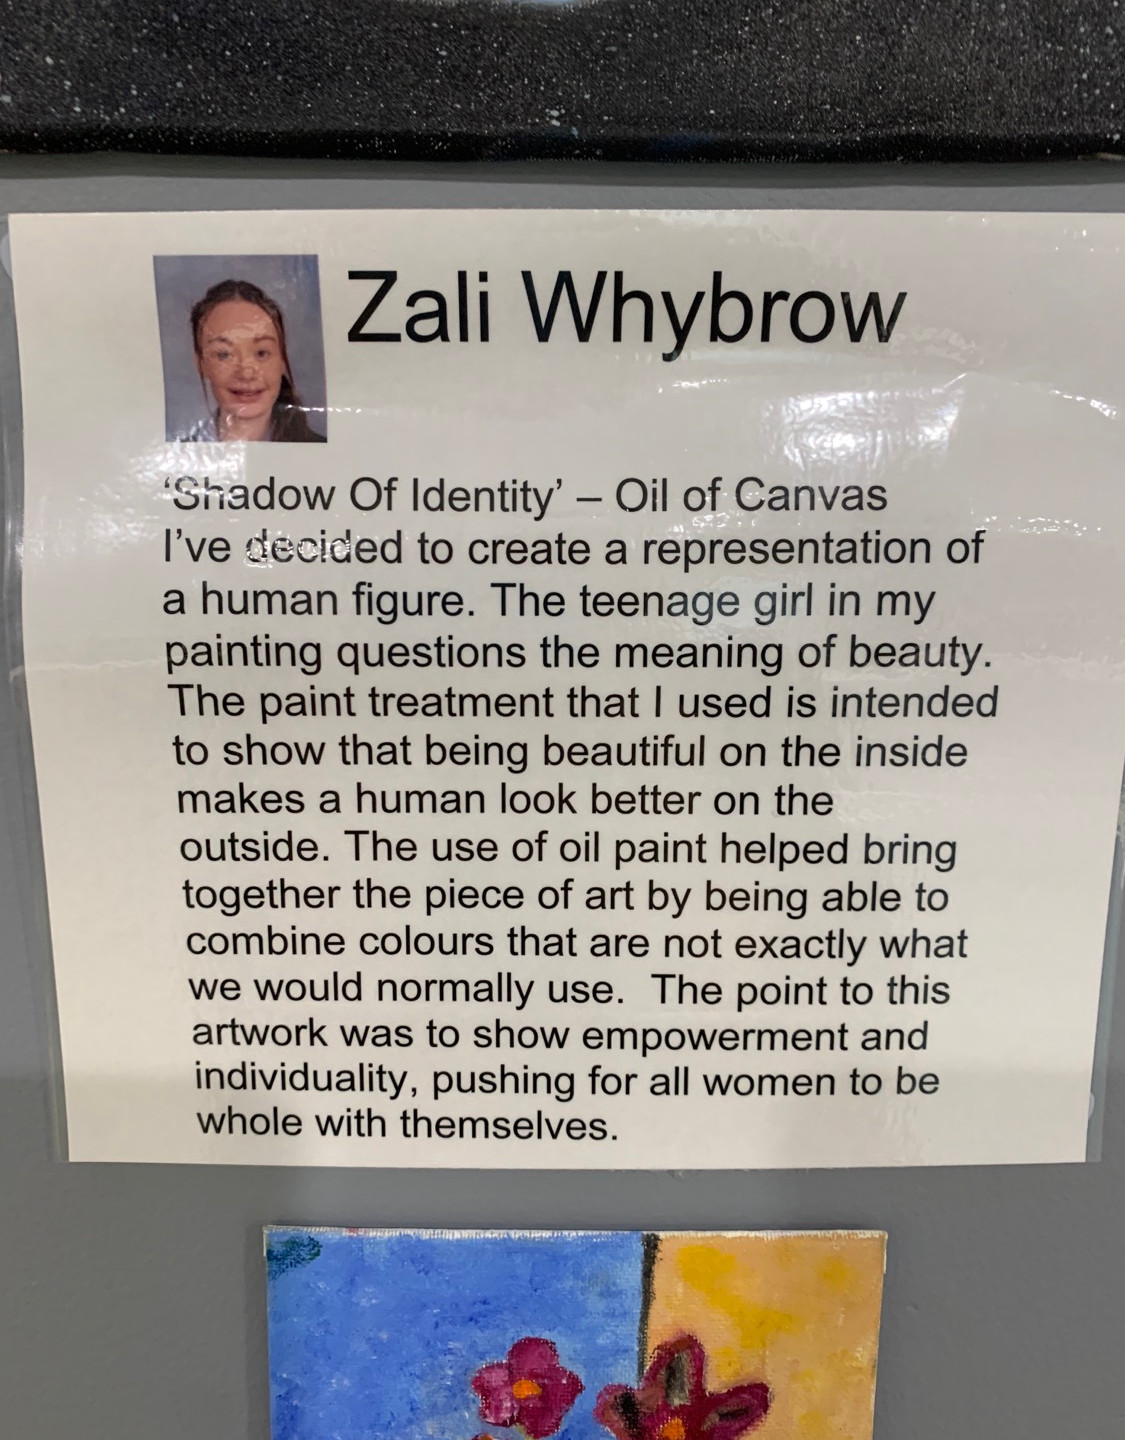 Zali Whybrow